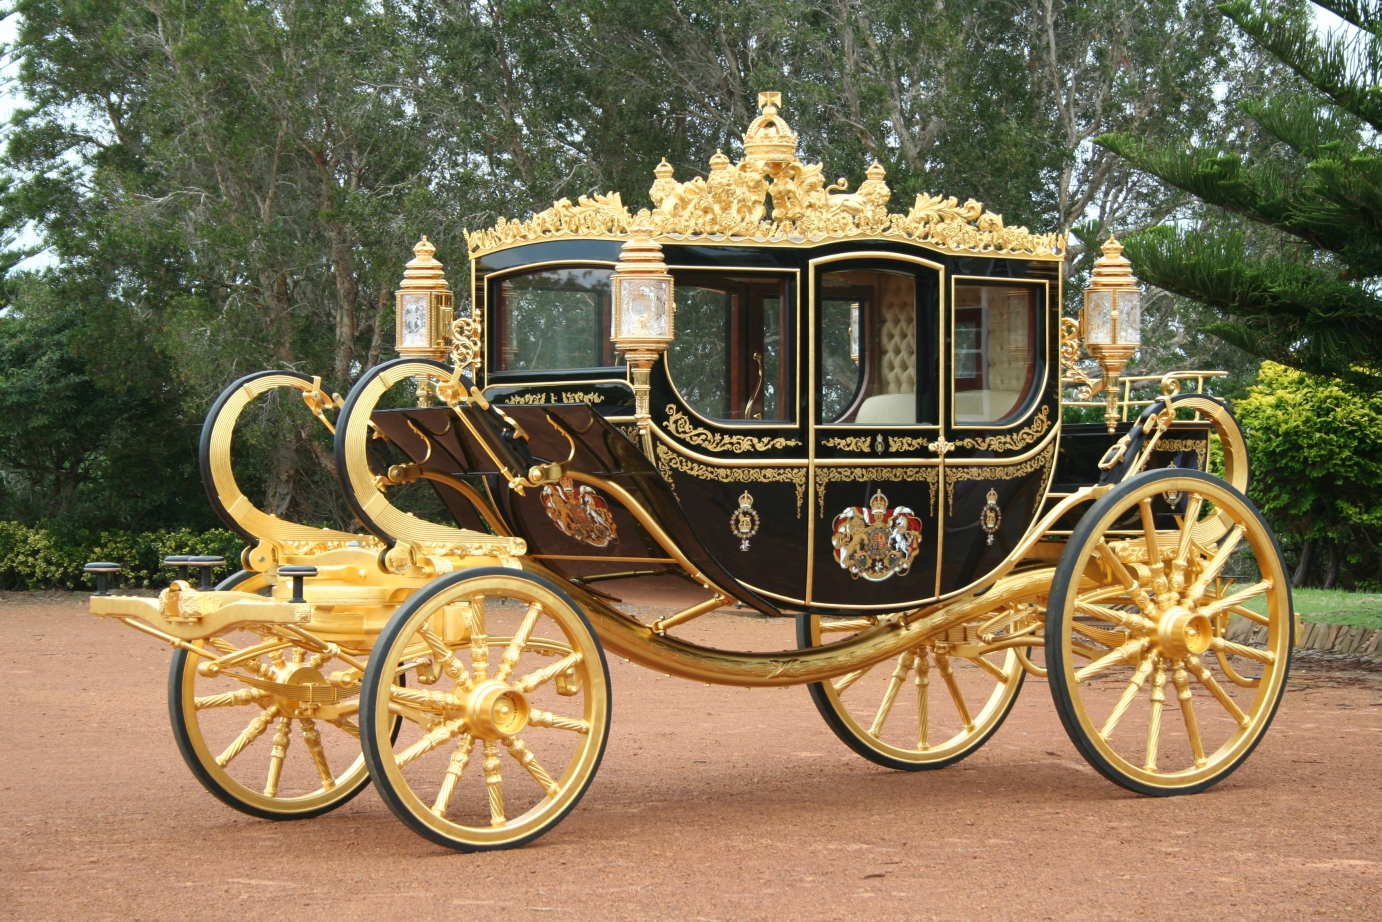 Drawn vehicle fancy car Jpg Adore: Britannia Wednesday~ Wedding